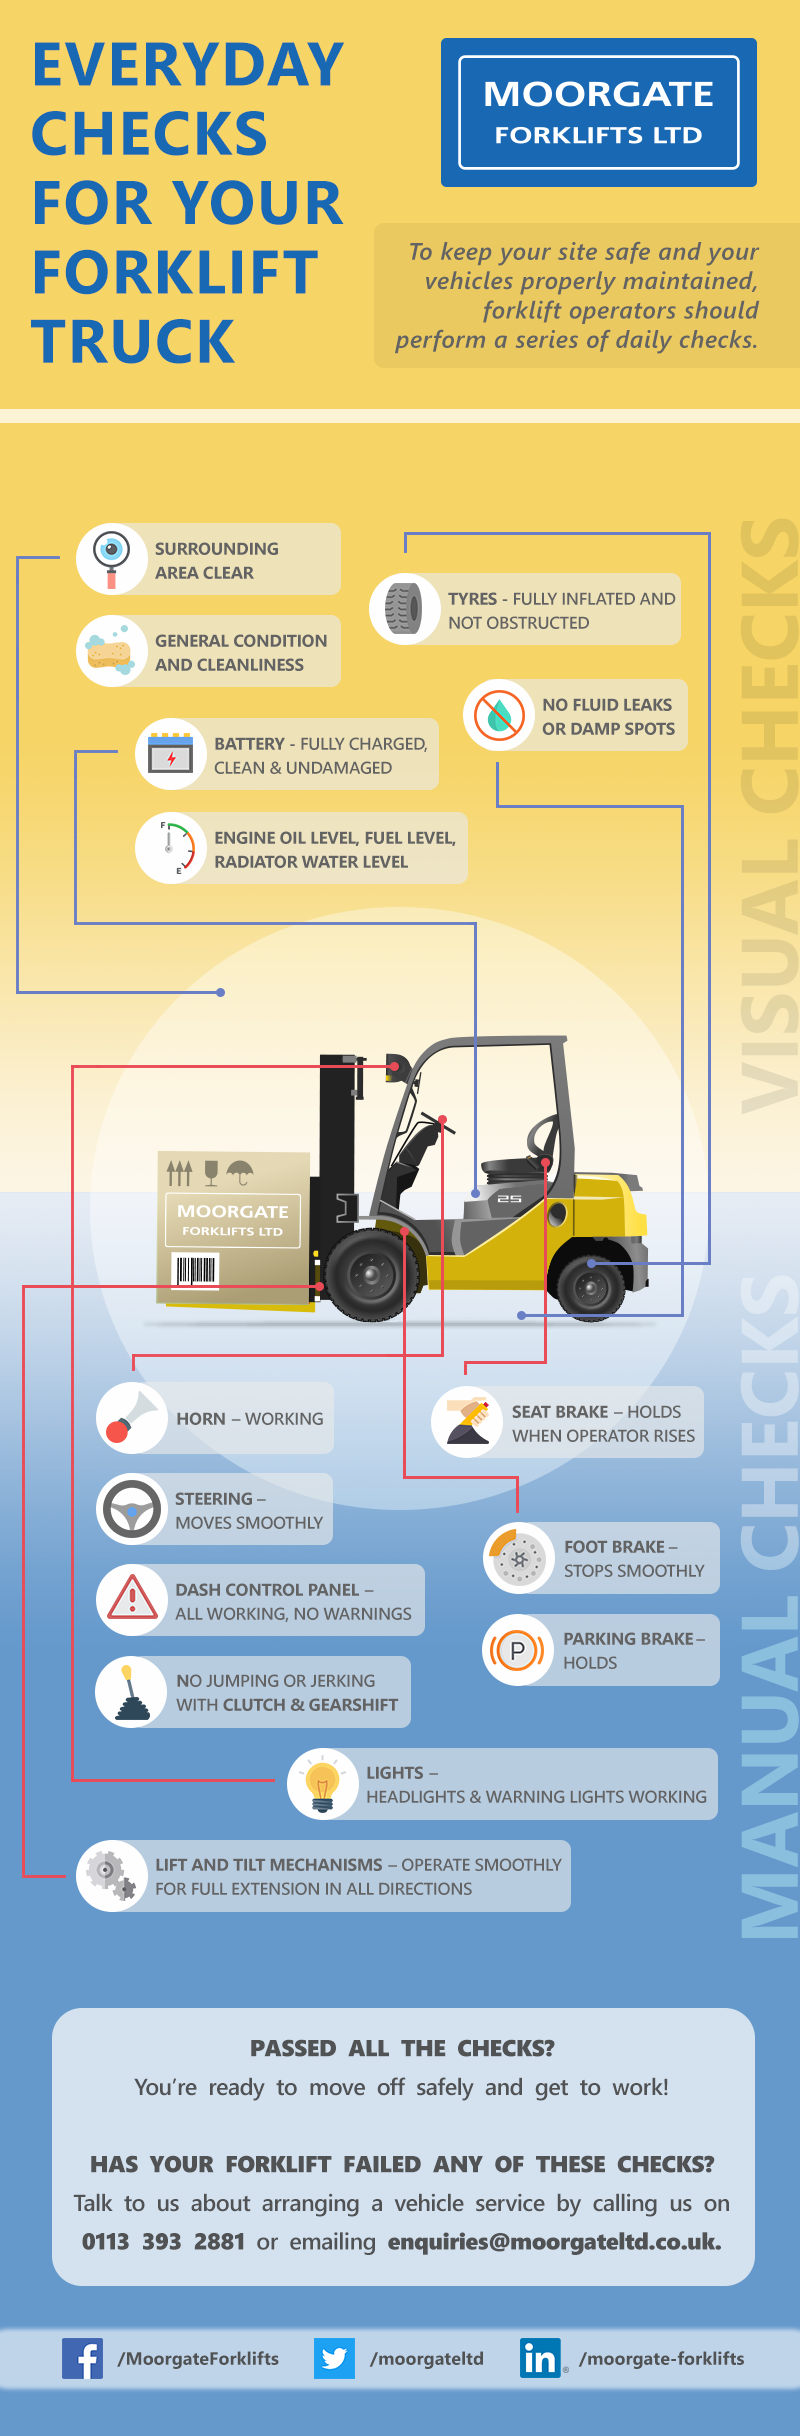 Moorgate-forklift-safety-infographic